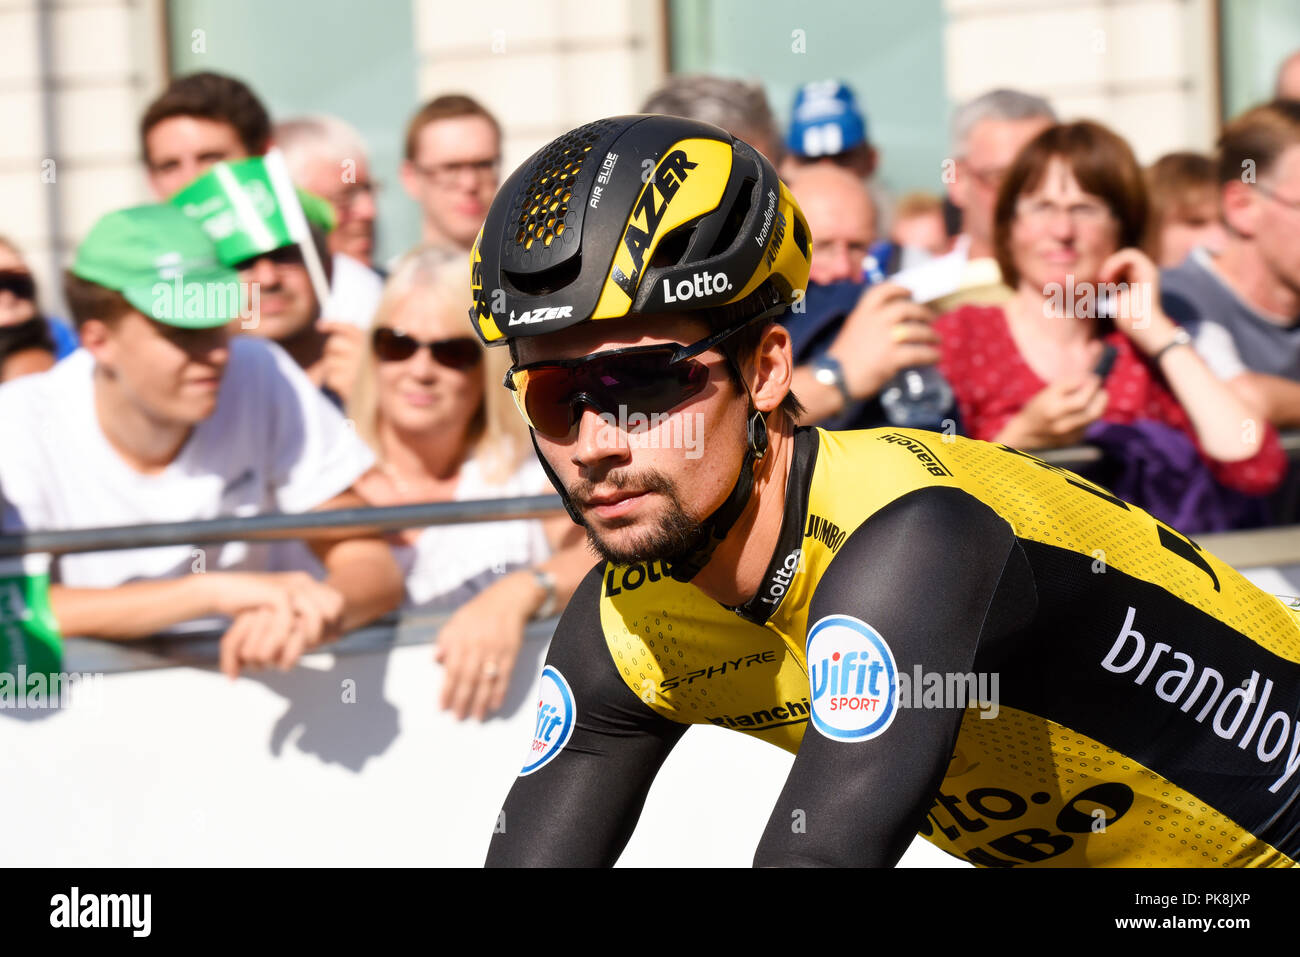 Primoz Roglic of team Lotto NL Jumbo at the OVO Energy Tour of Britain cycle  race a7aa9f18d